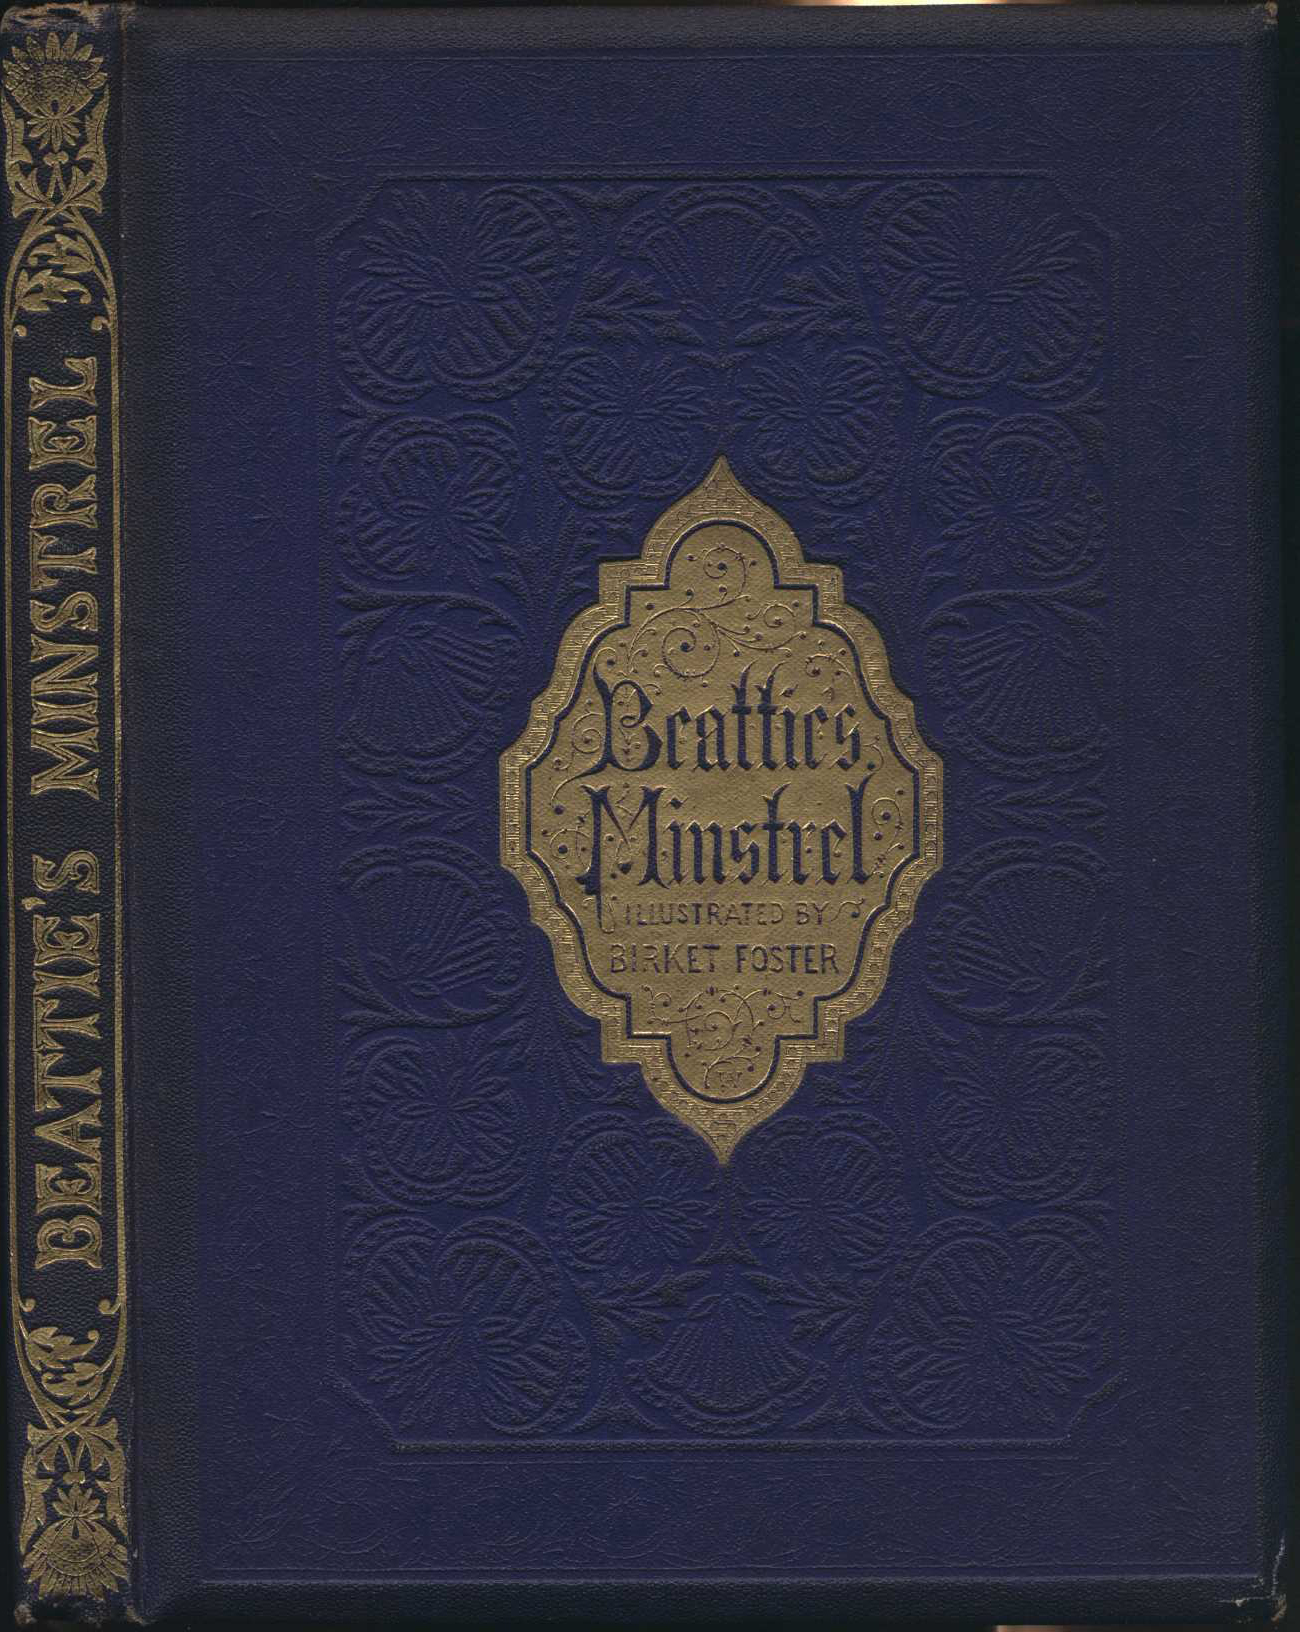 James Beattie. The minstrel. London and New York: G. Routledge, 1858.